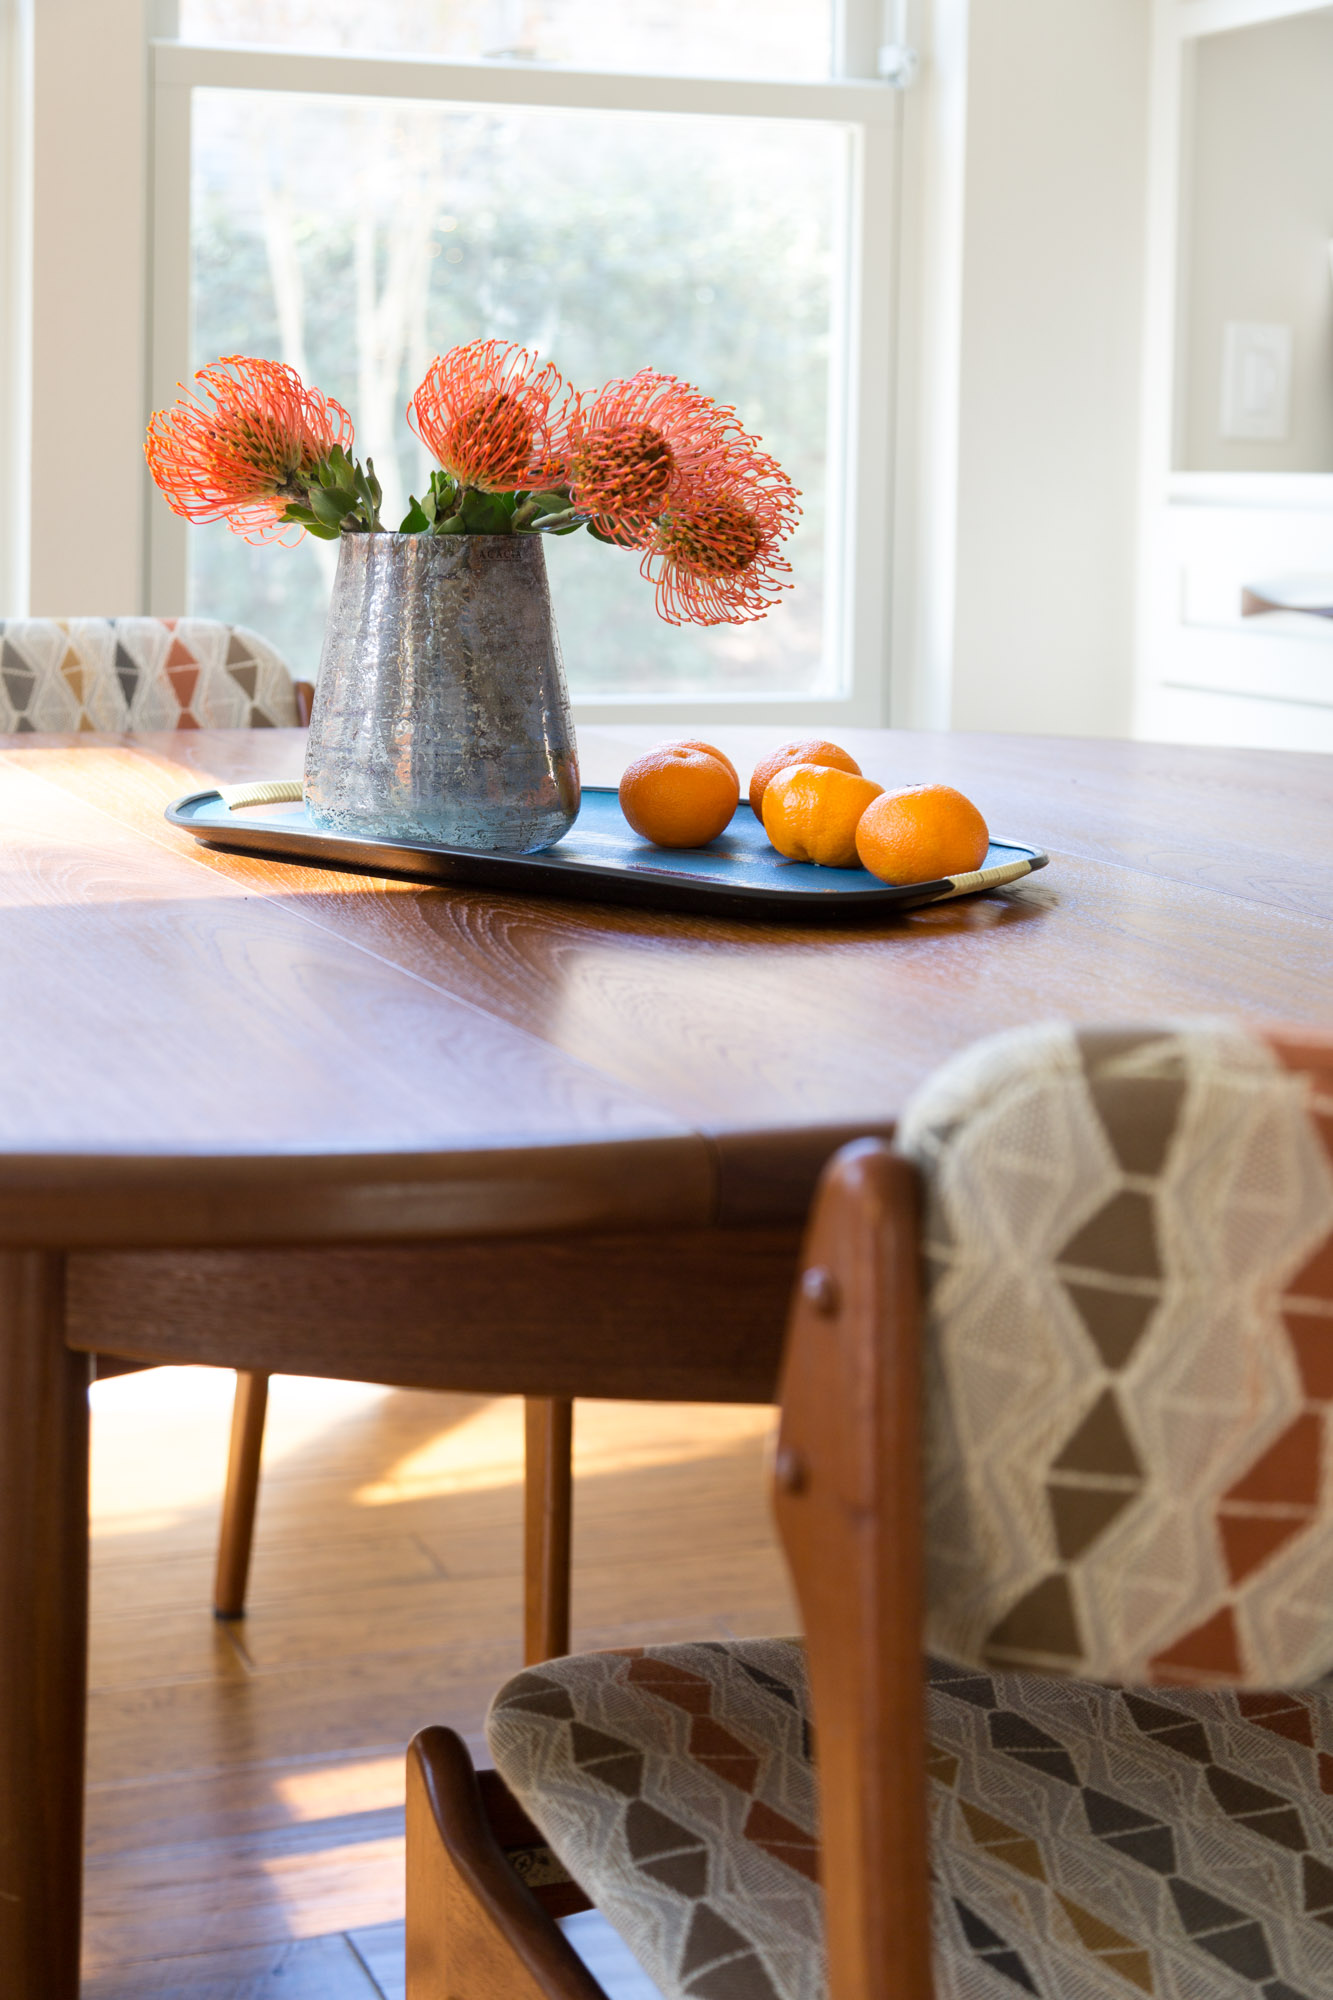 Mid century modern table and chairs in breakfast room with orange pincushion flowers, Designer: Carla Aston